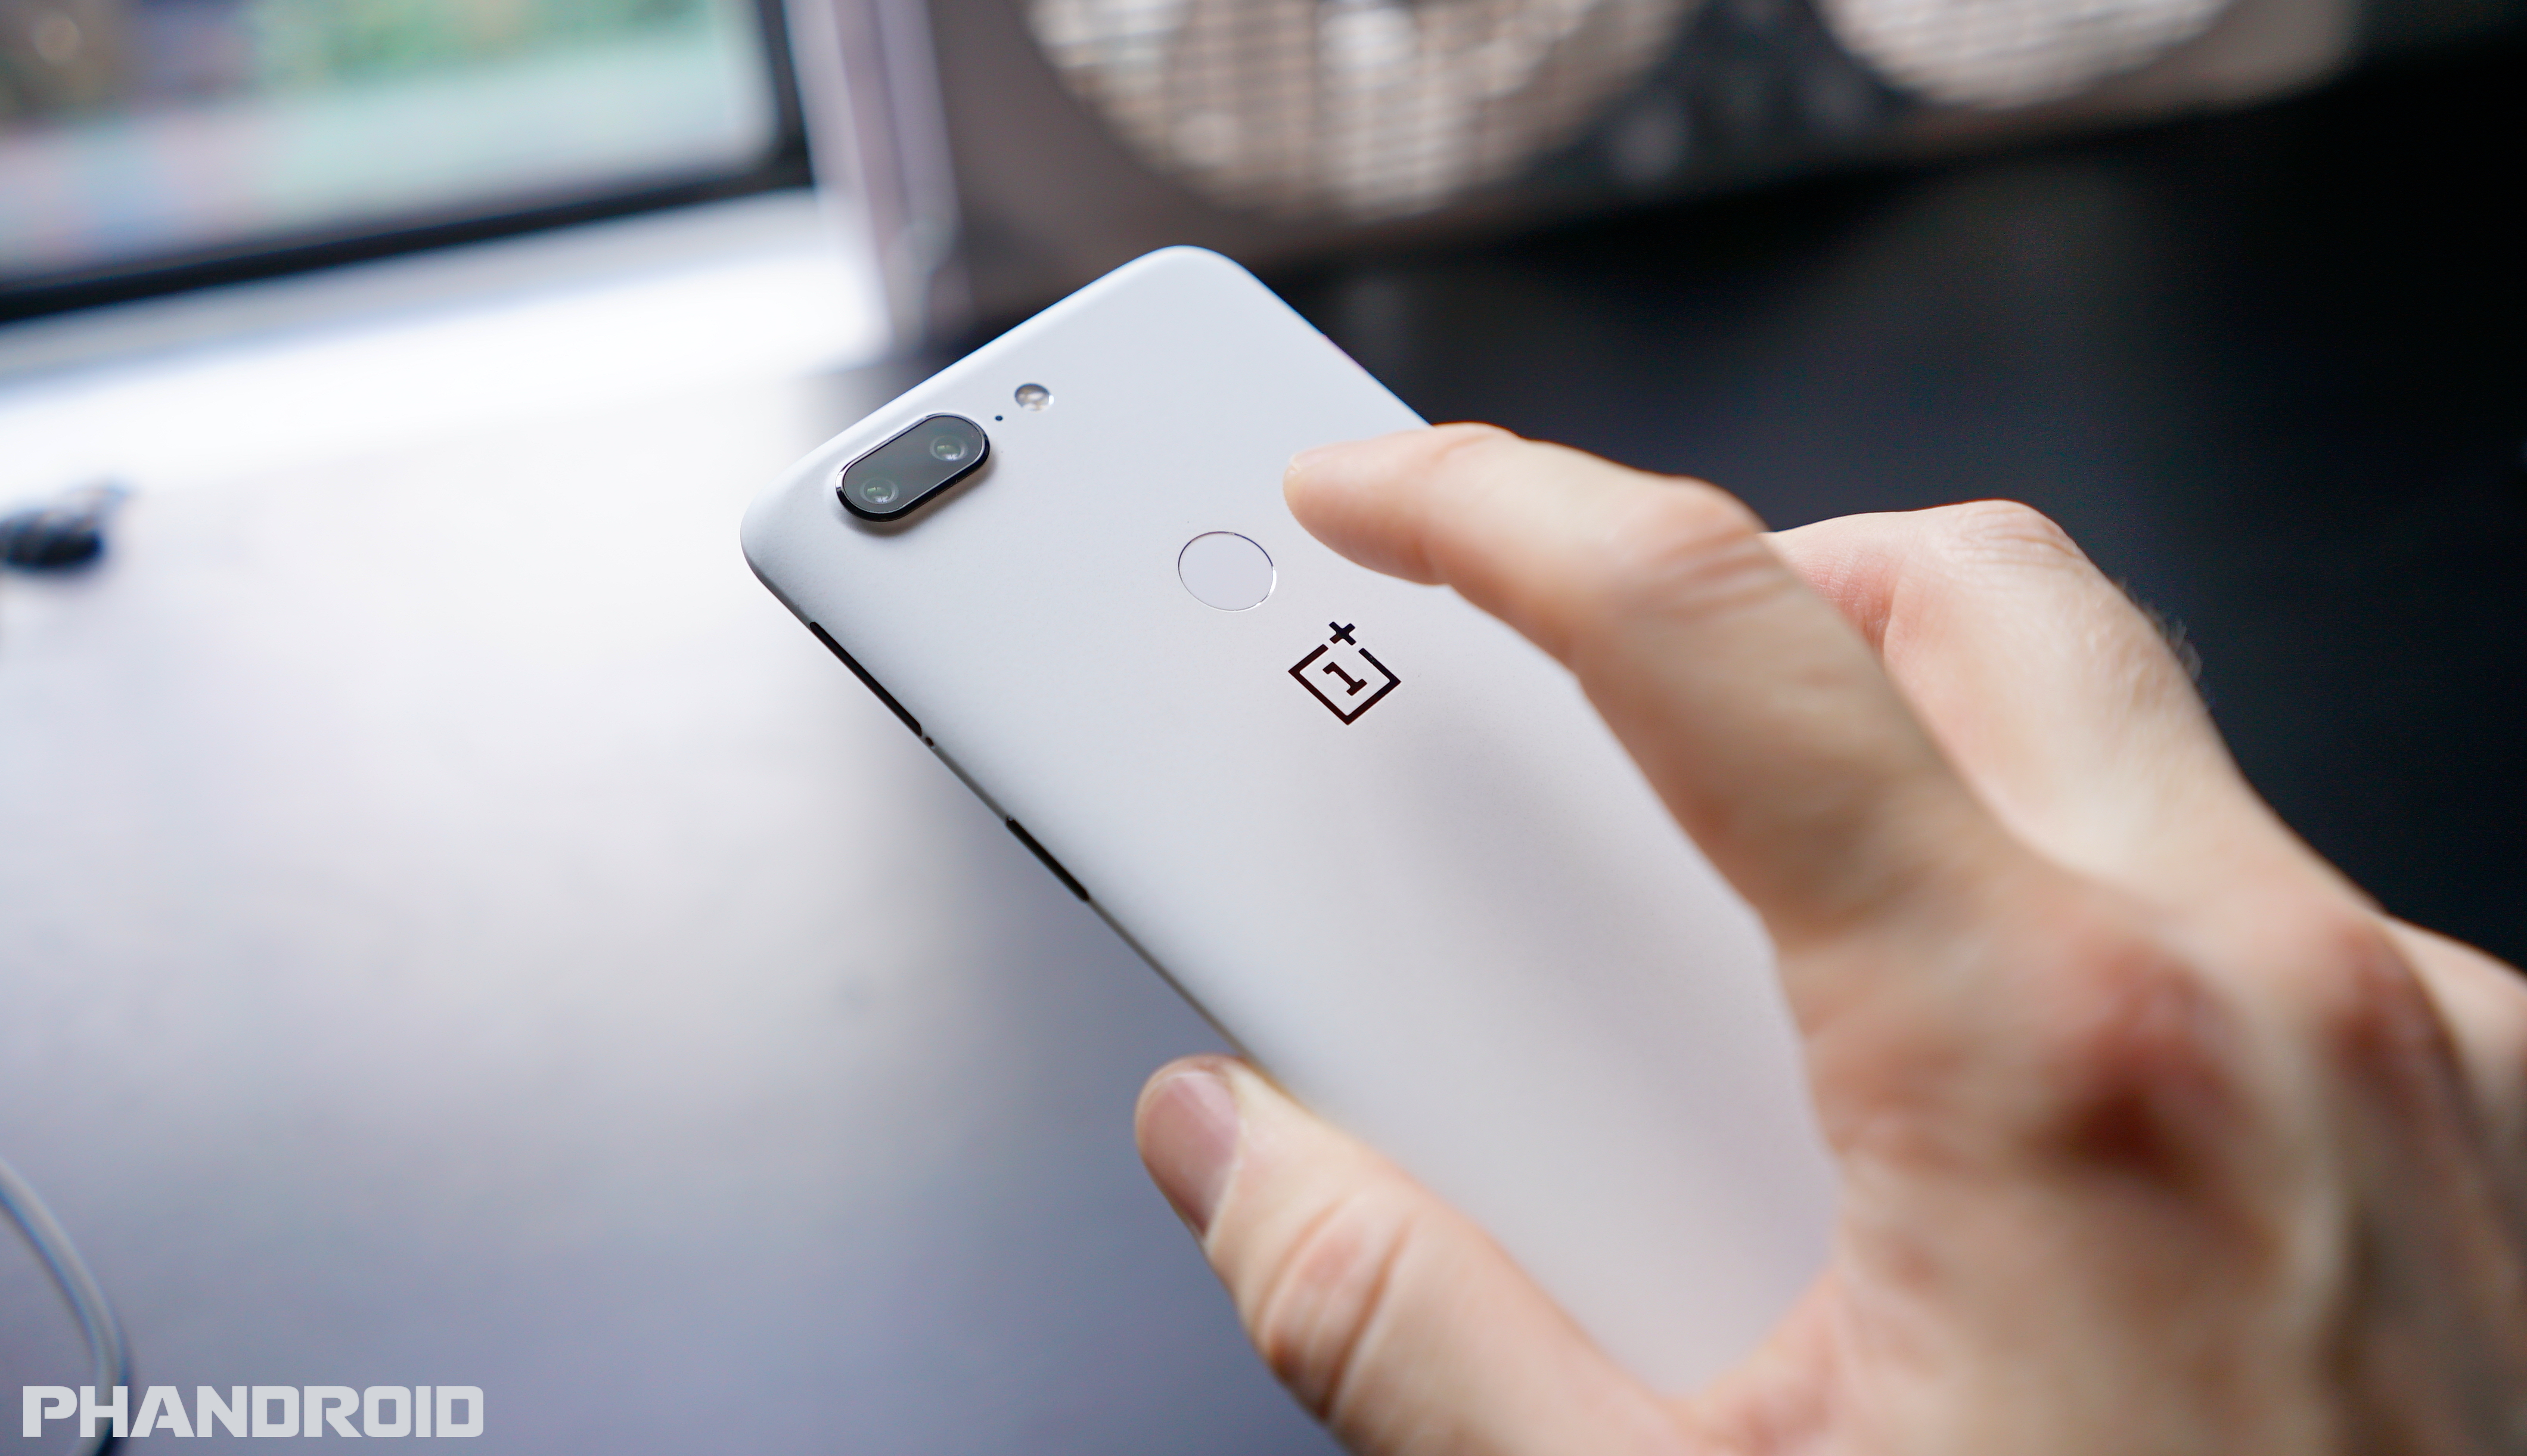 phandroid.com - Tyler Lee - Google not sure if current fingerprint sensors are secure enough for mobile payments